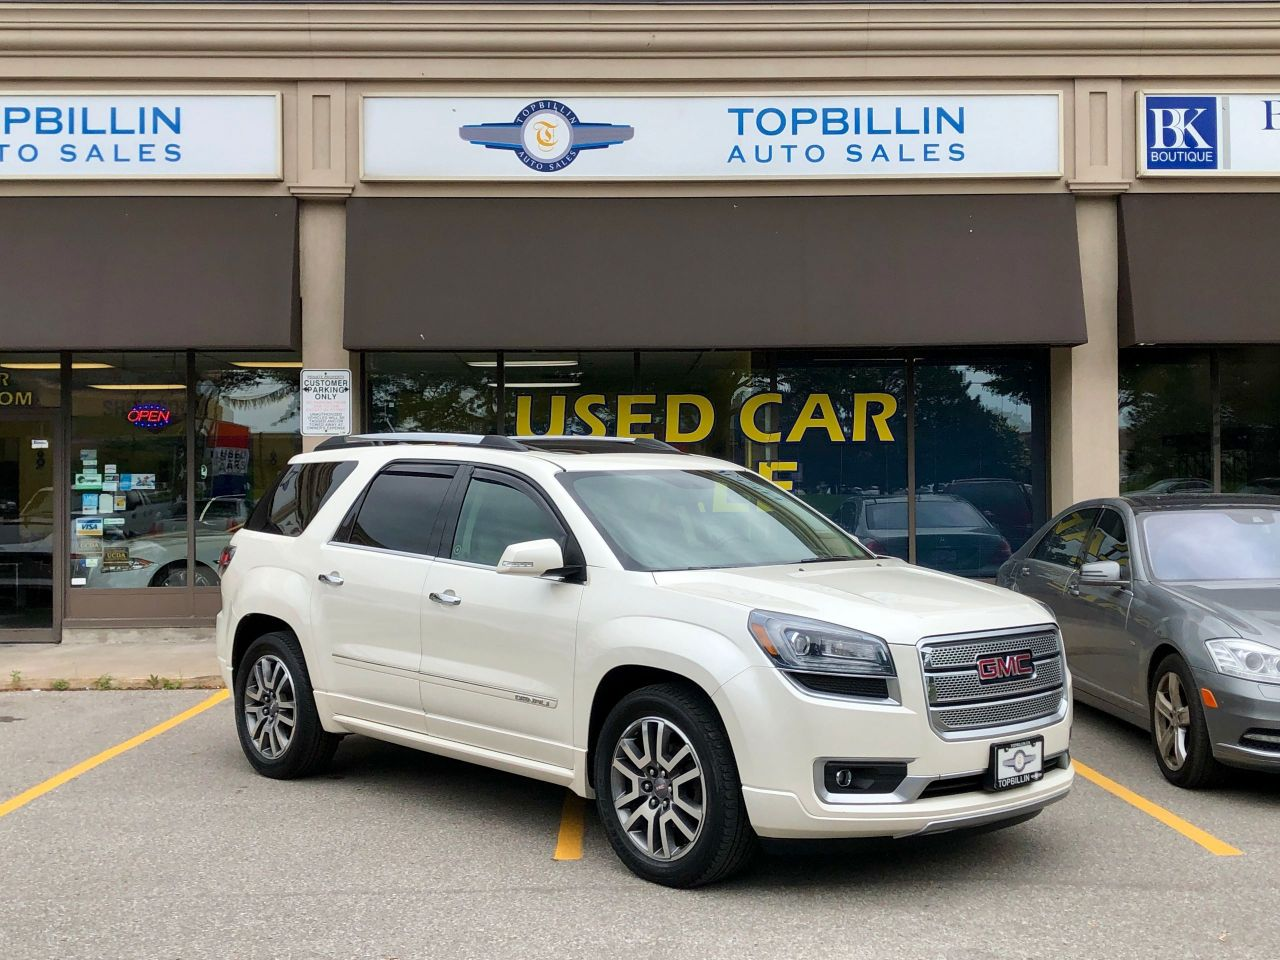 2013 GMC Acadia AWD Denali, Fully Loaded, 2 Years Warranty